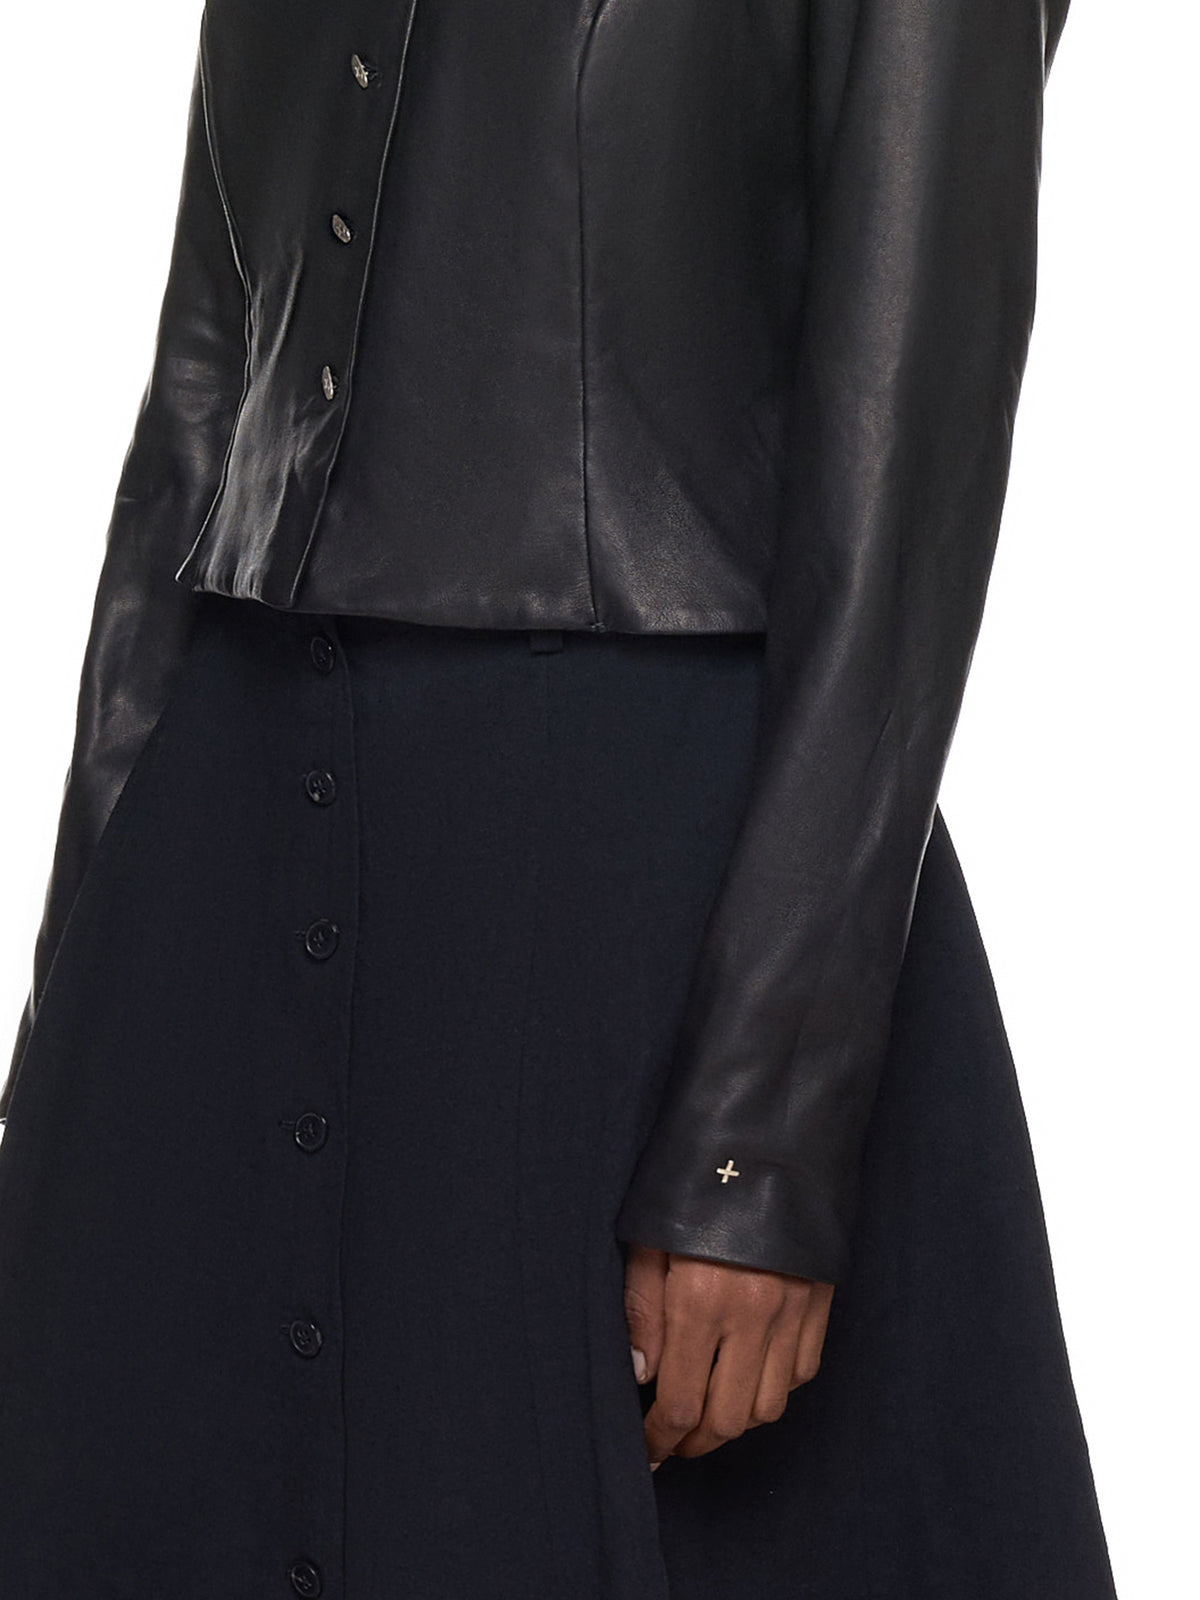 Ma+ Leather Jacket - Hlorenzo Detail 2